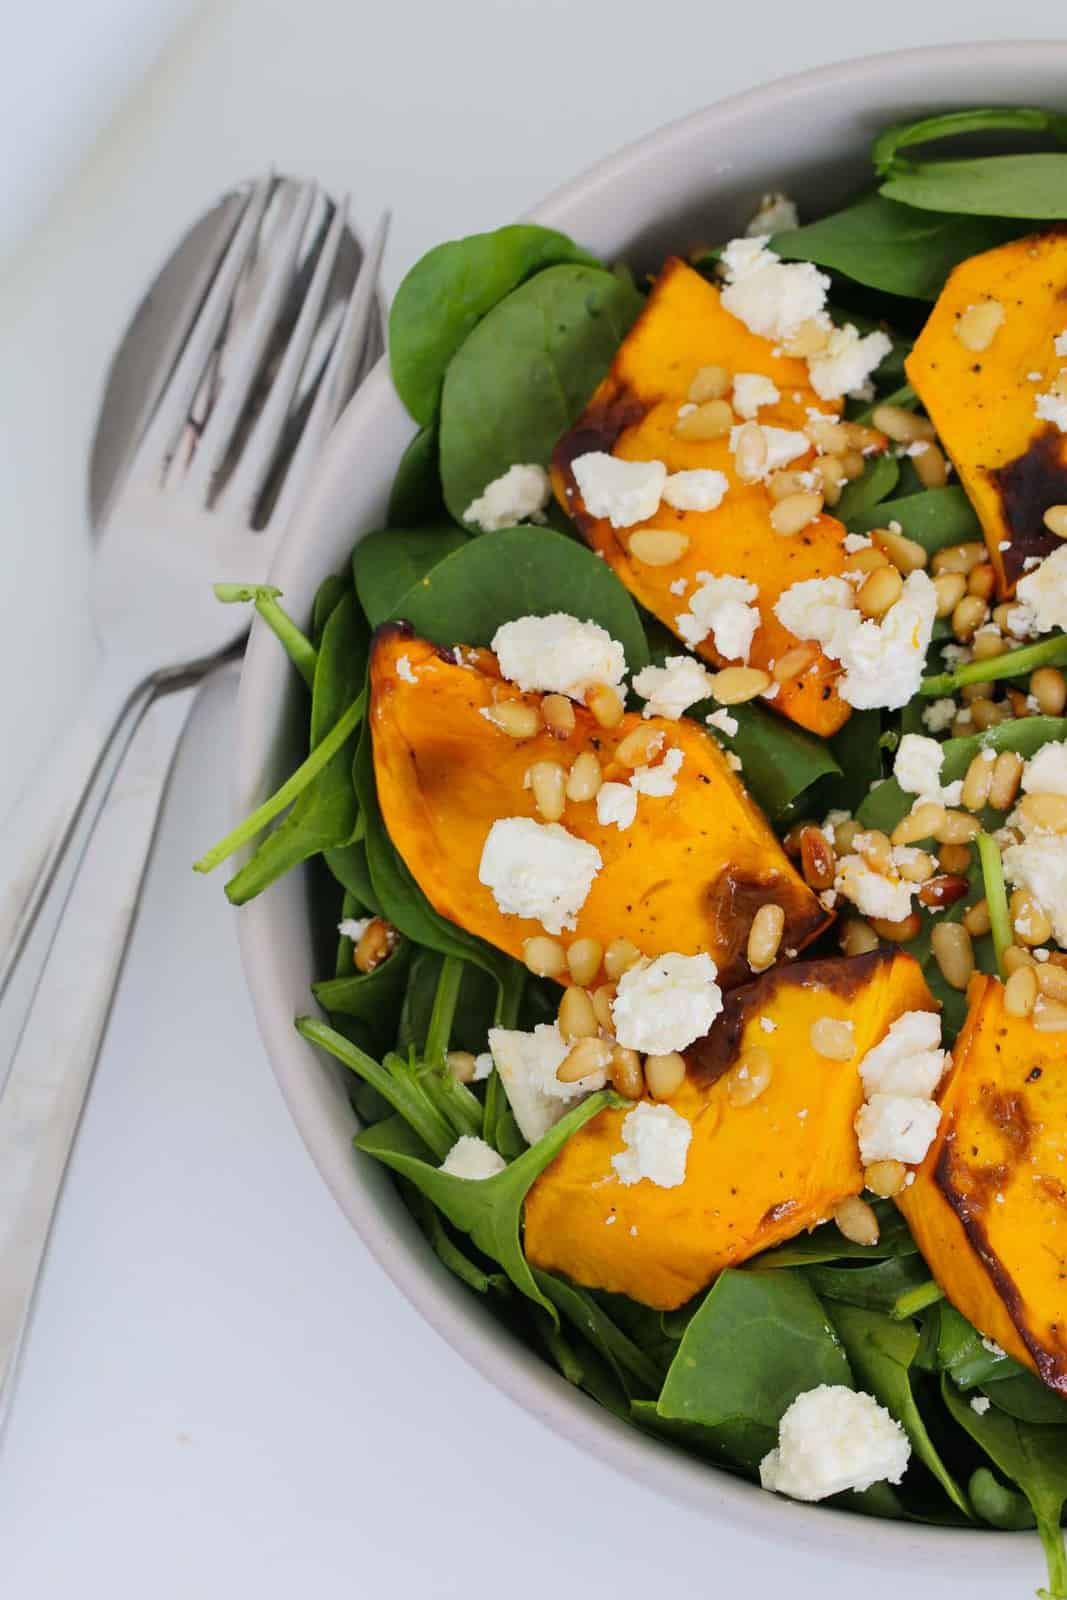 Salad servers next to a bowl of pumpkin and spinach salad, with pine nuts and feta mixed through.